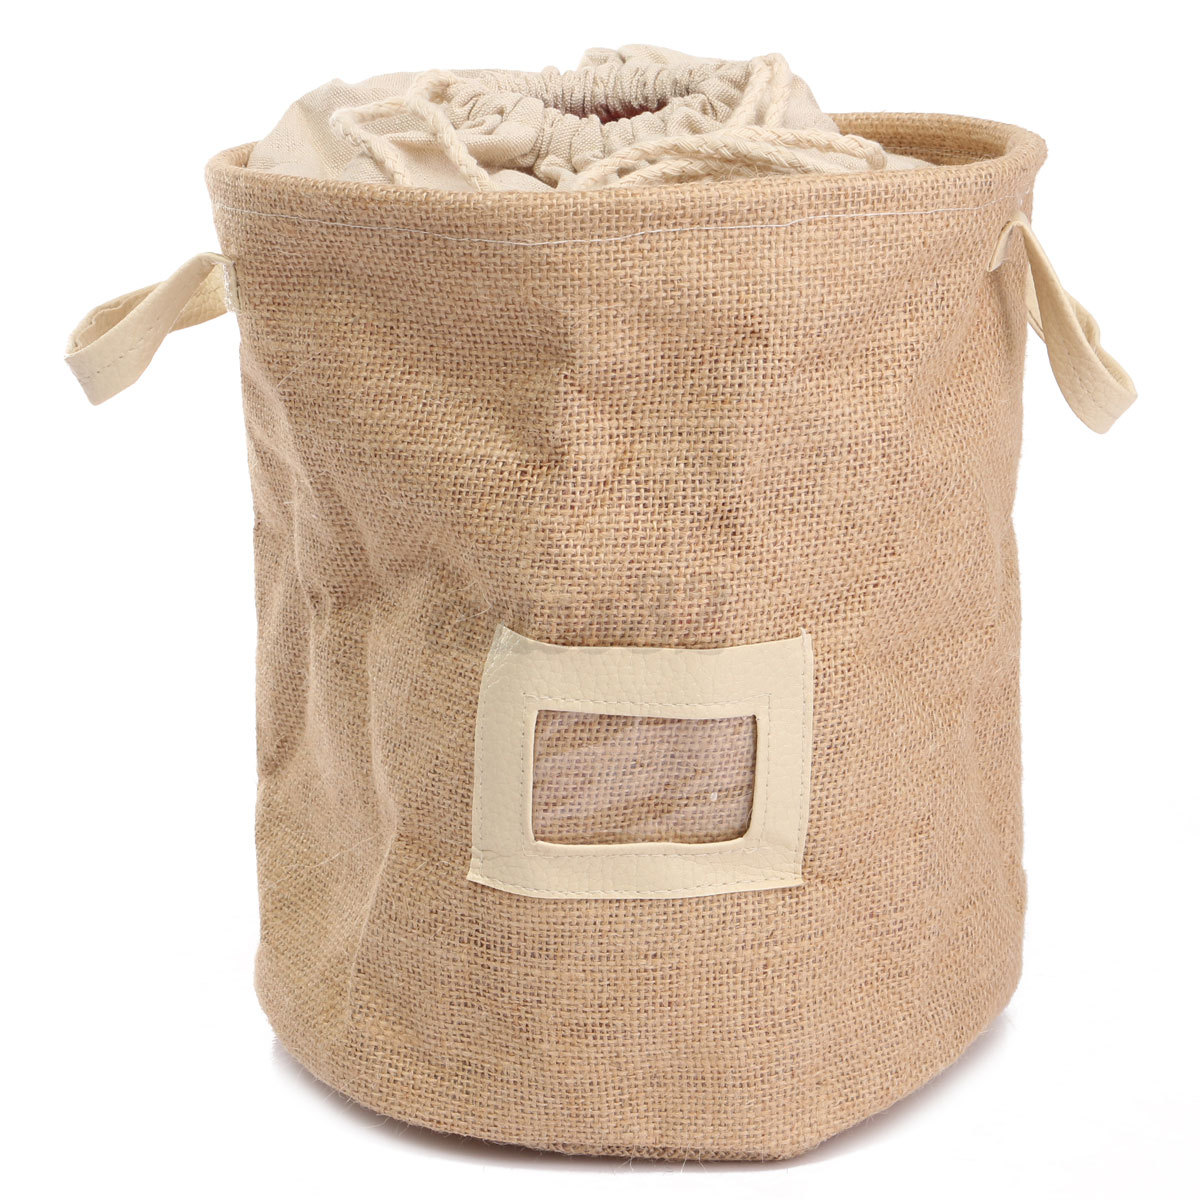 Laundry Clothes Bag Foldable Linen Washing Clothes Laundry Basket Bag Hamper